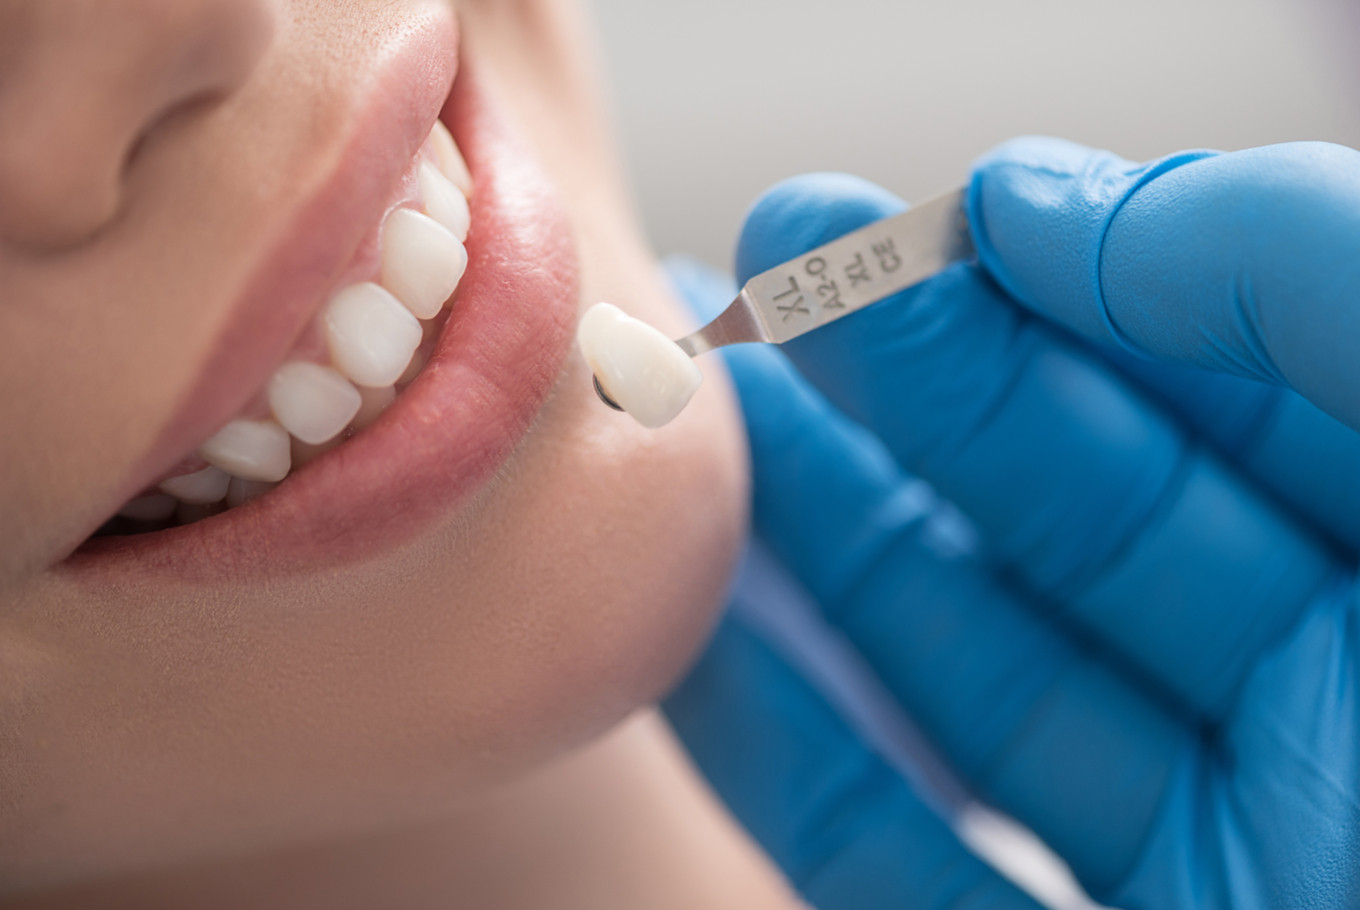 World Health Organization  updates COVID-19 guidelines, advises against routine dental checkups